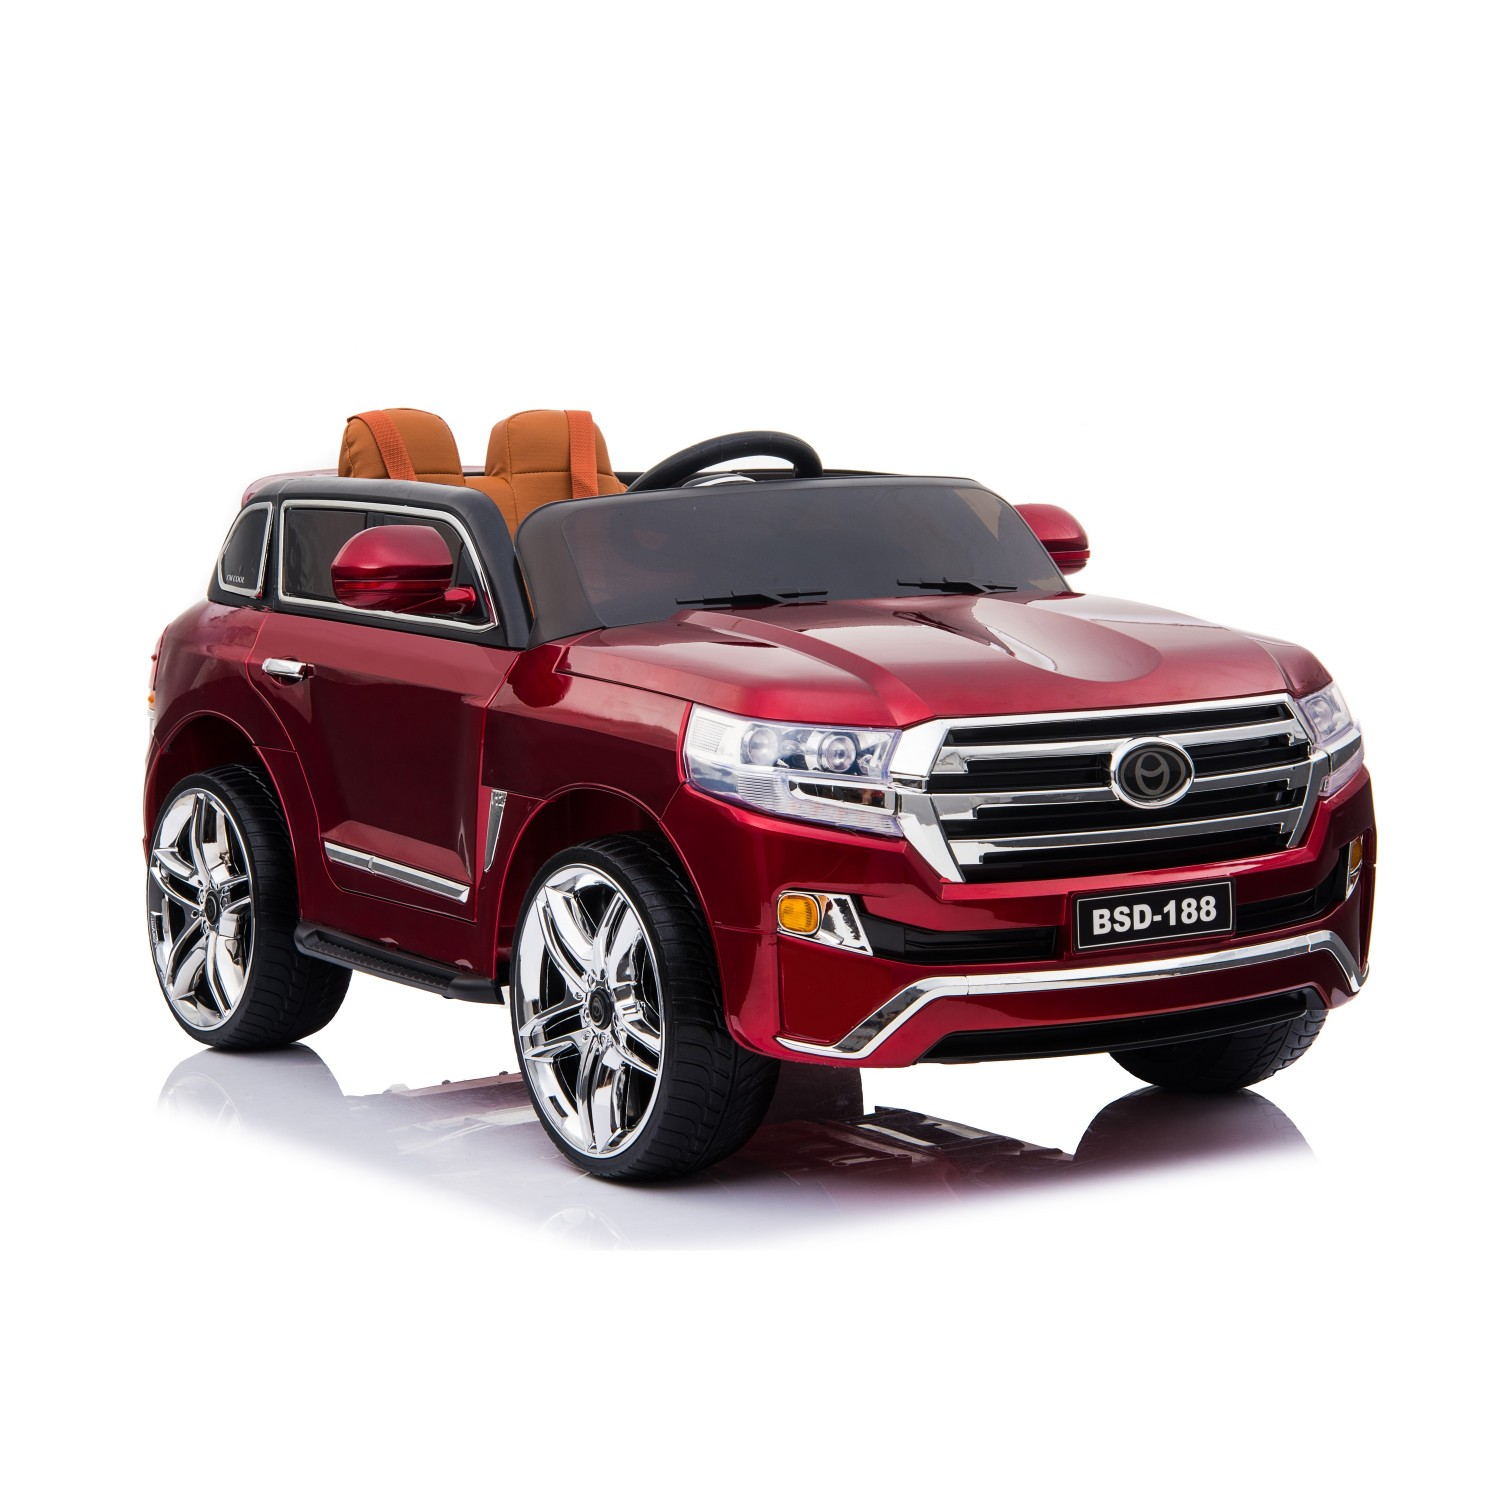 Style Toyota Land Cruiser 200 Electric Ride On Cars For Kids 12v Red Bsd 188 Leather And Eva Wheels